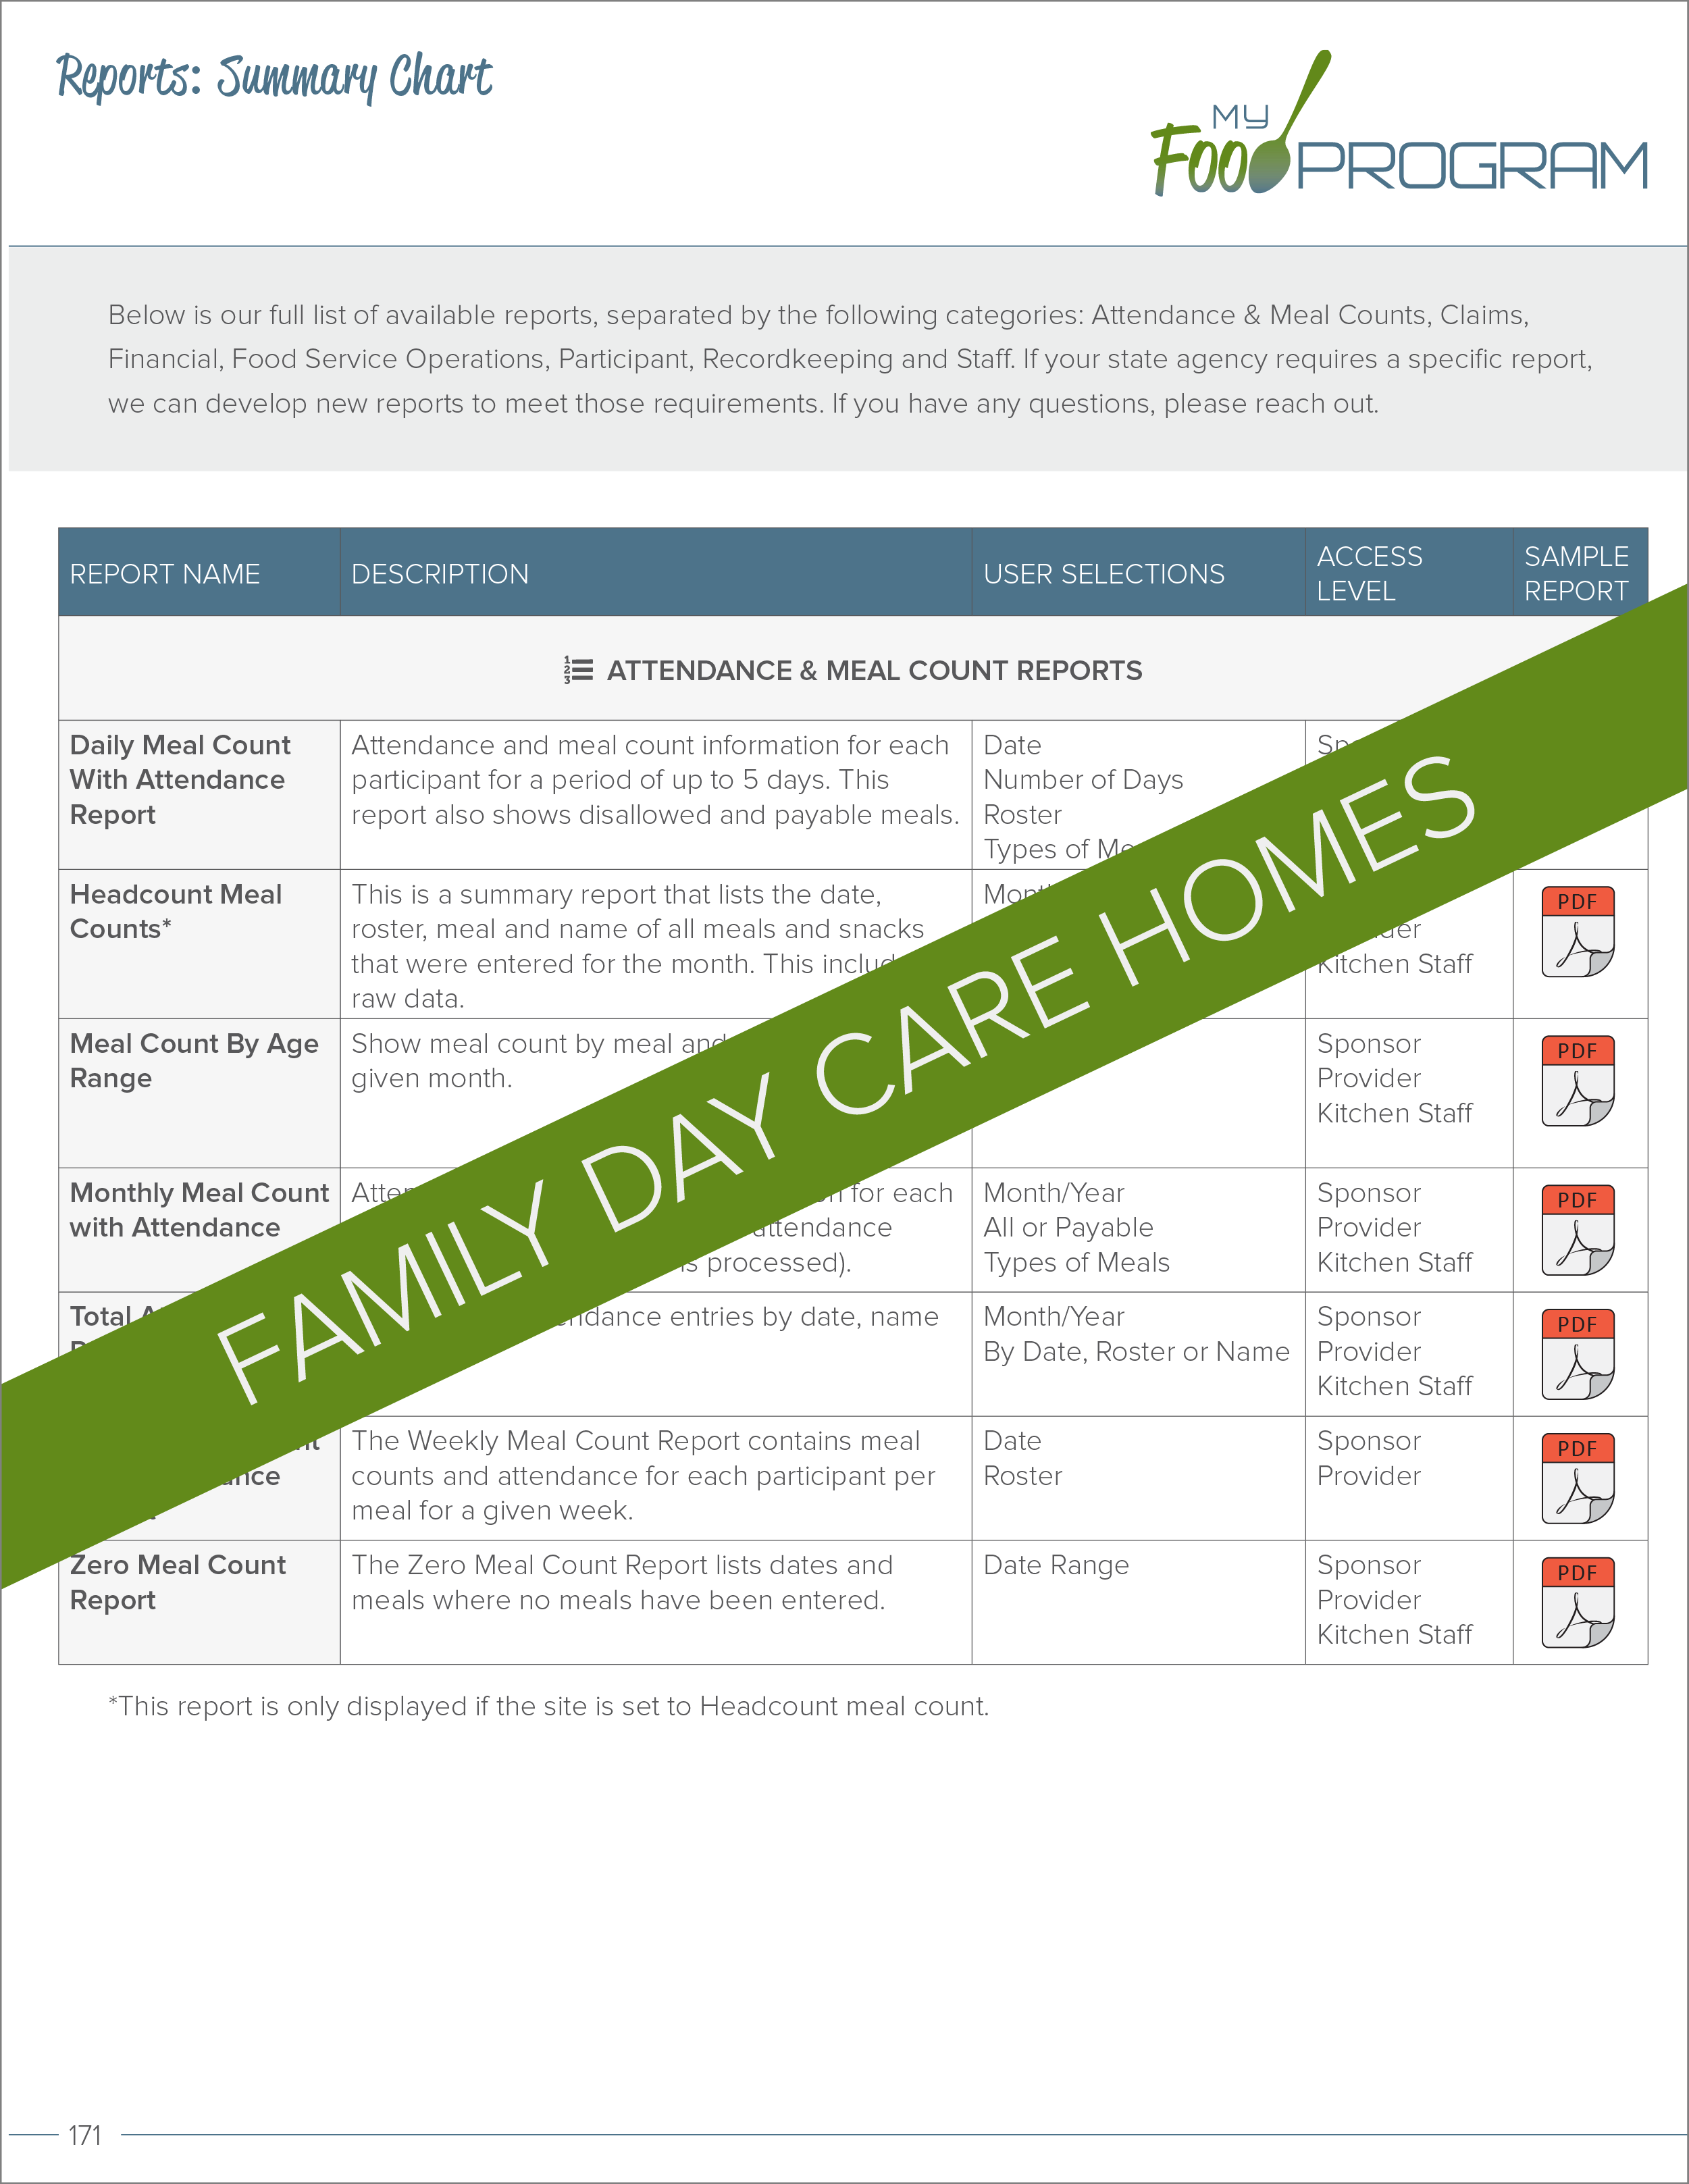 Family Day Care Homes Reports Summary Chart